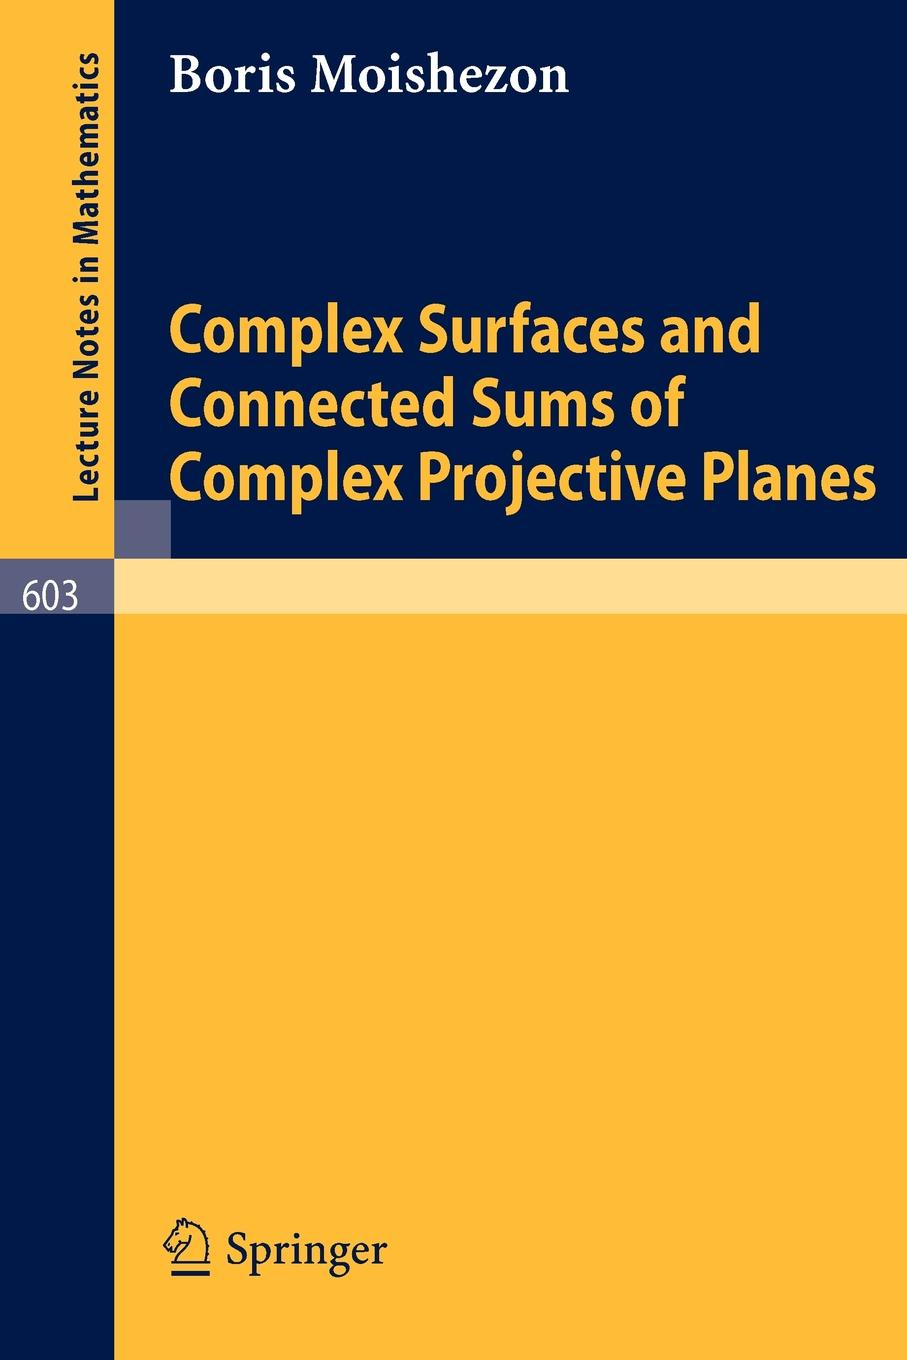 B. Moishezon Complex Surfaces and Connected Sums of Projective Planes